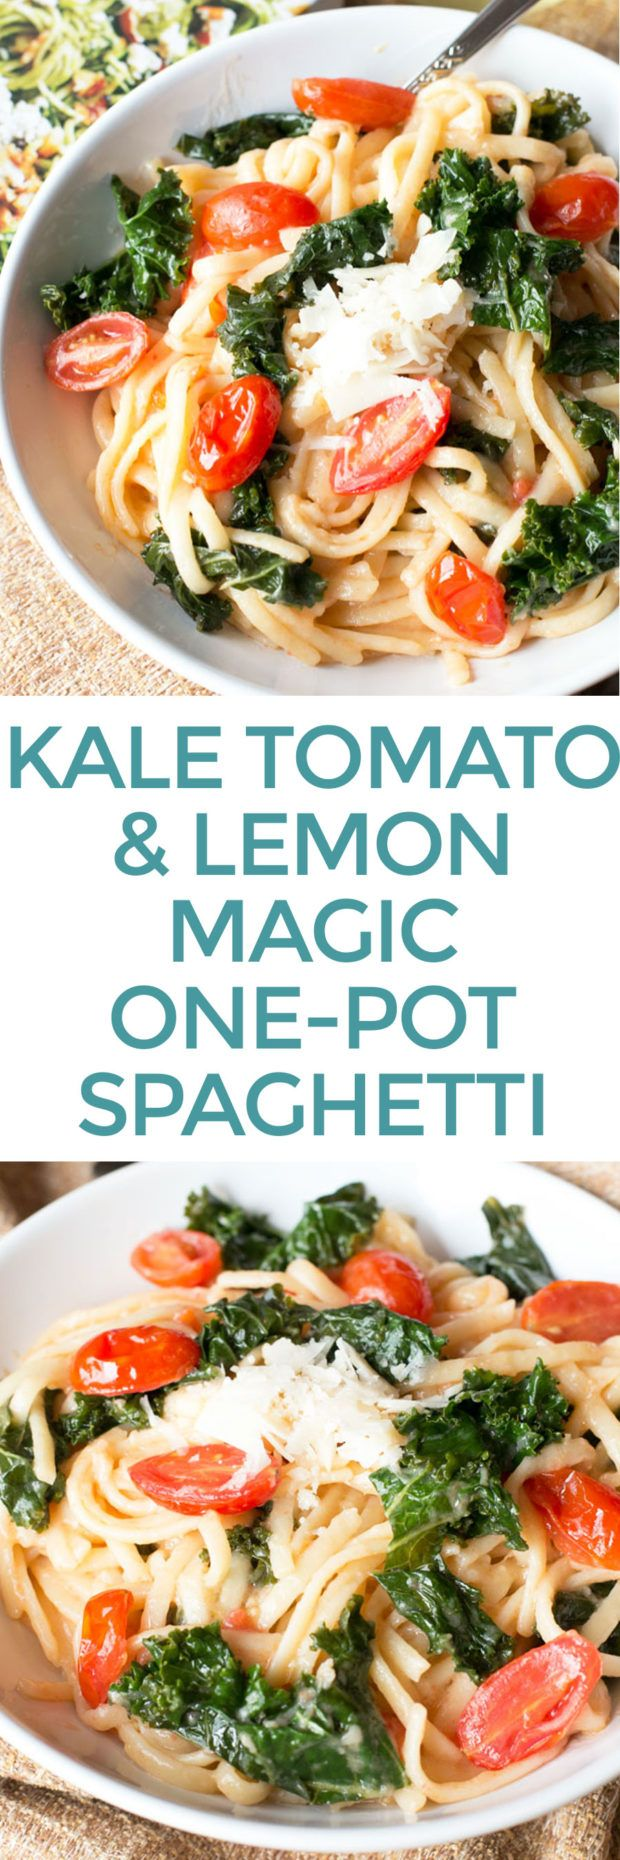 Cookbook Review: A Modern Way to Cook + Kale, Tomato, and Lemon Magic One-Pot Spaghetti – Cake 'n Knife